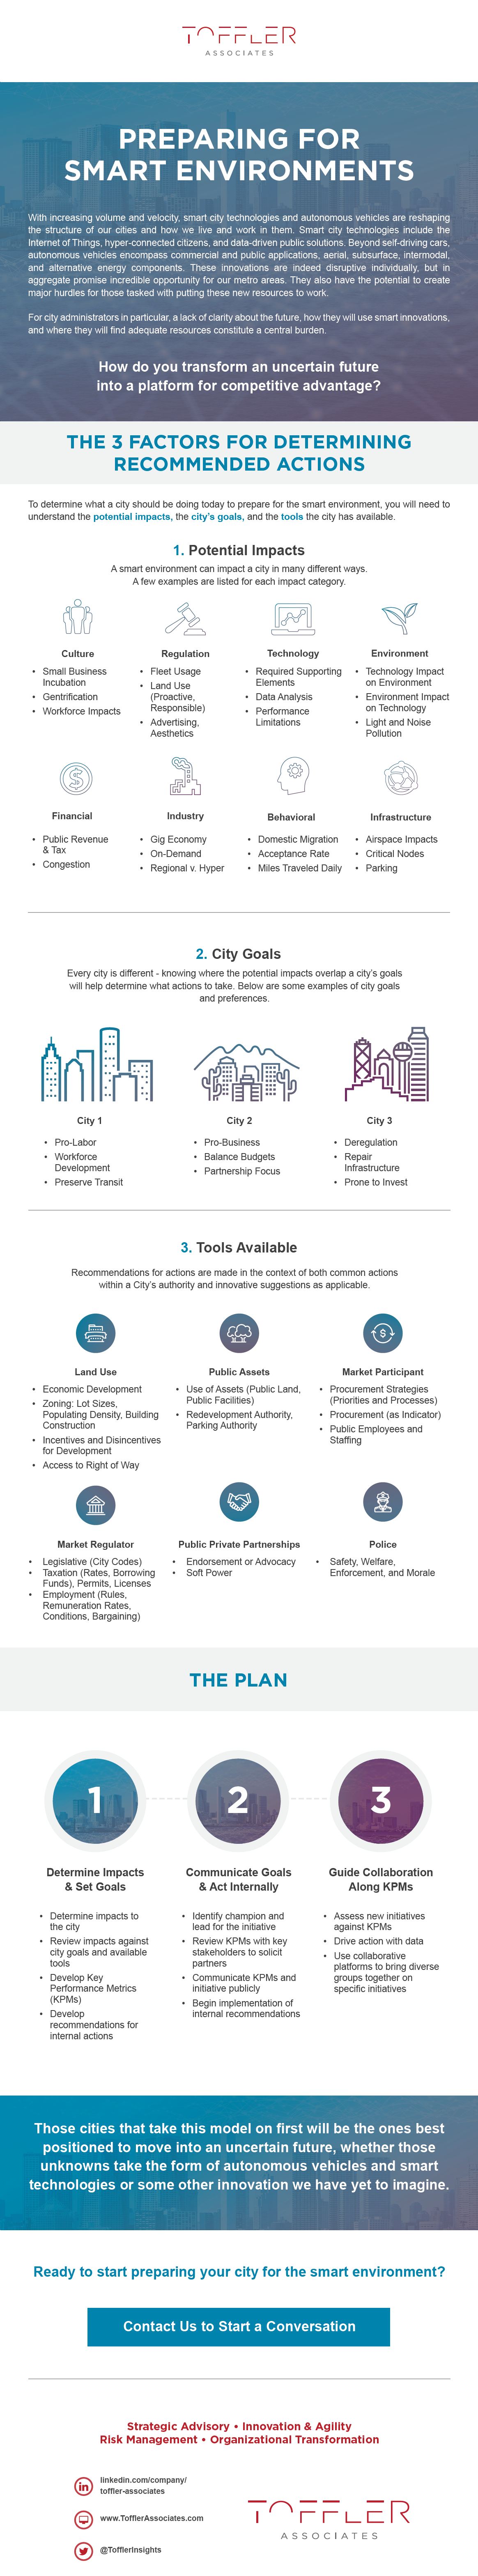 How Cities Should Prepare for Smart Environments Infographic